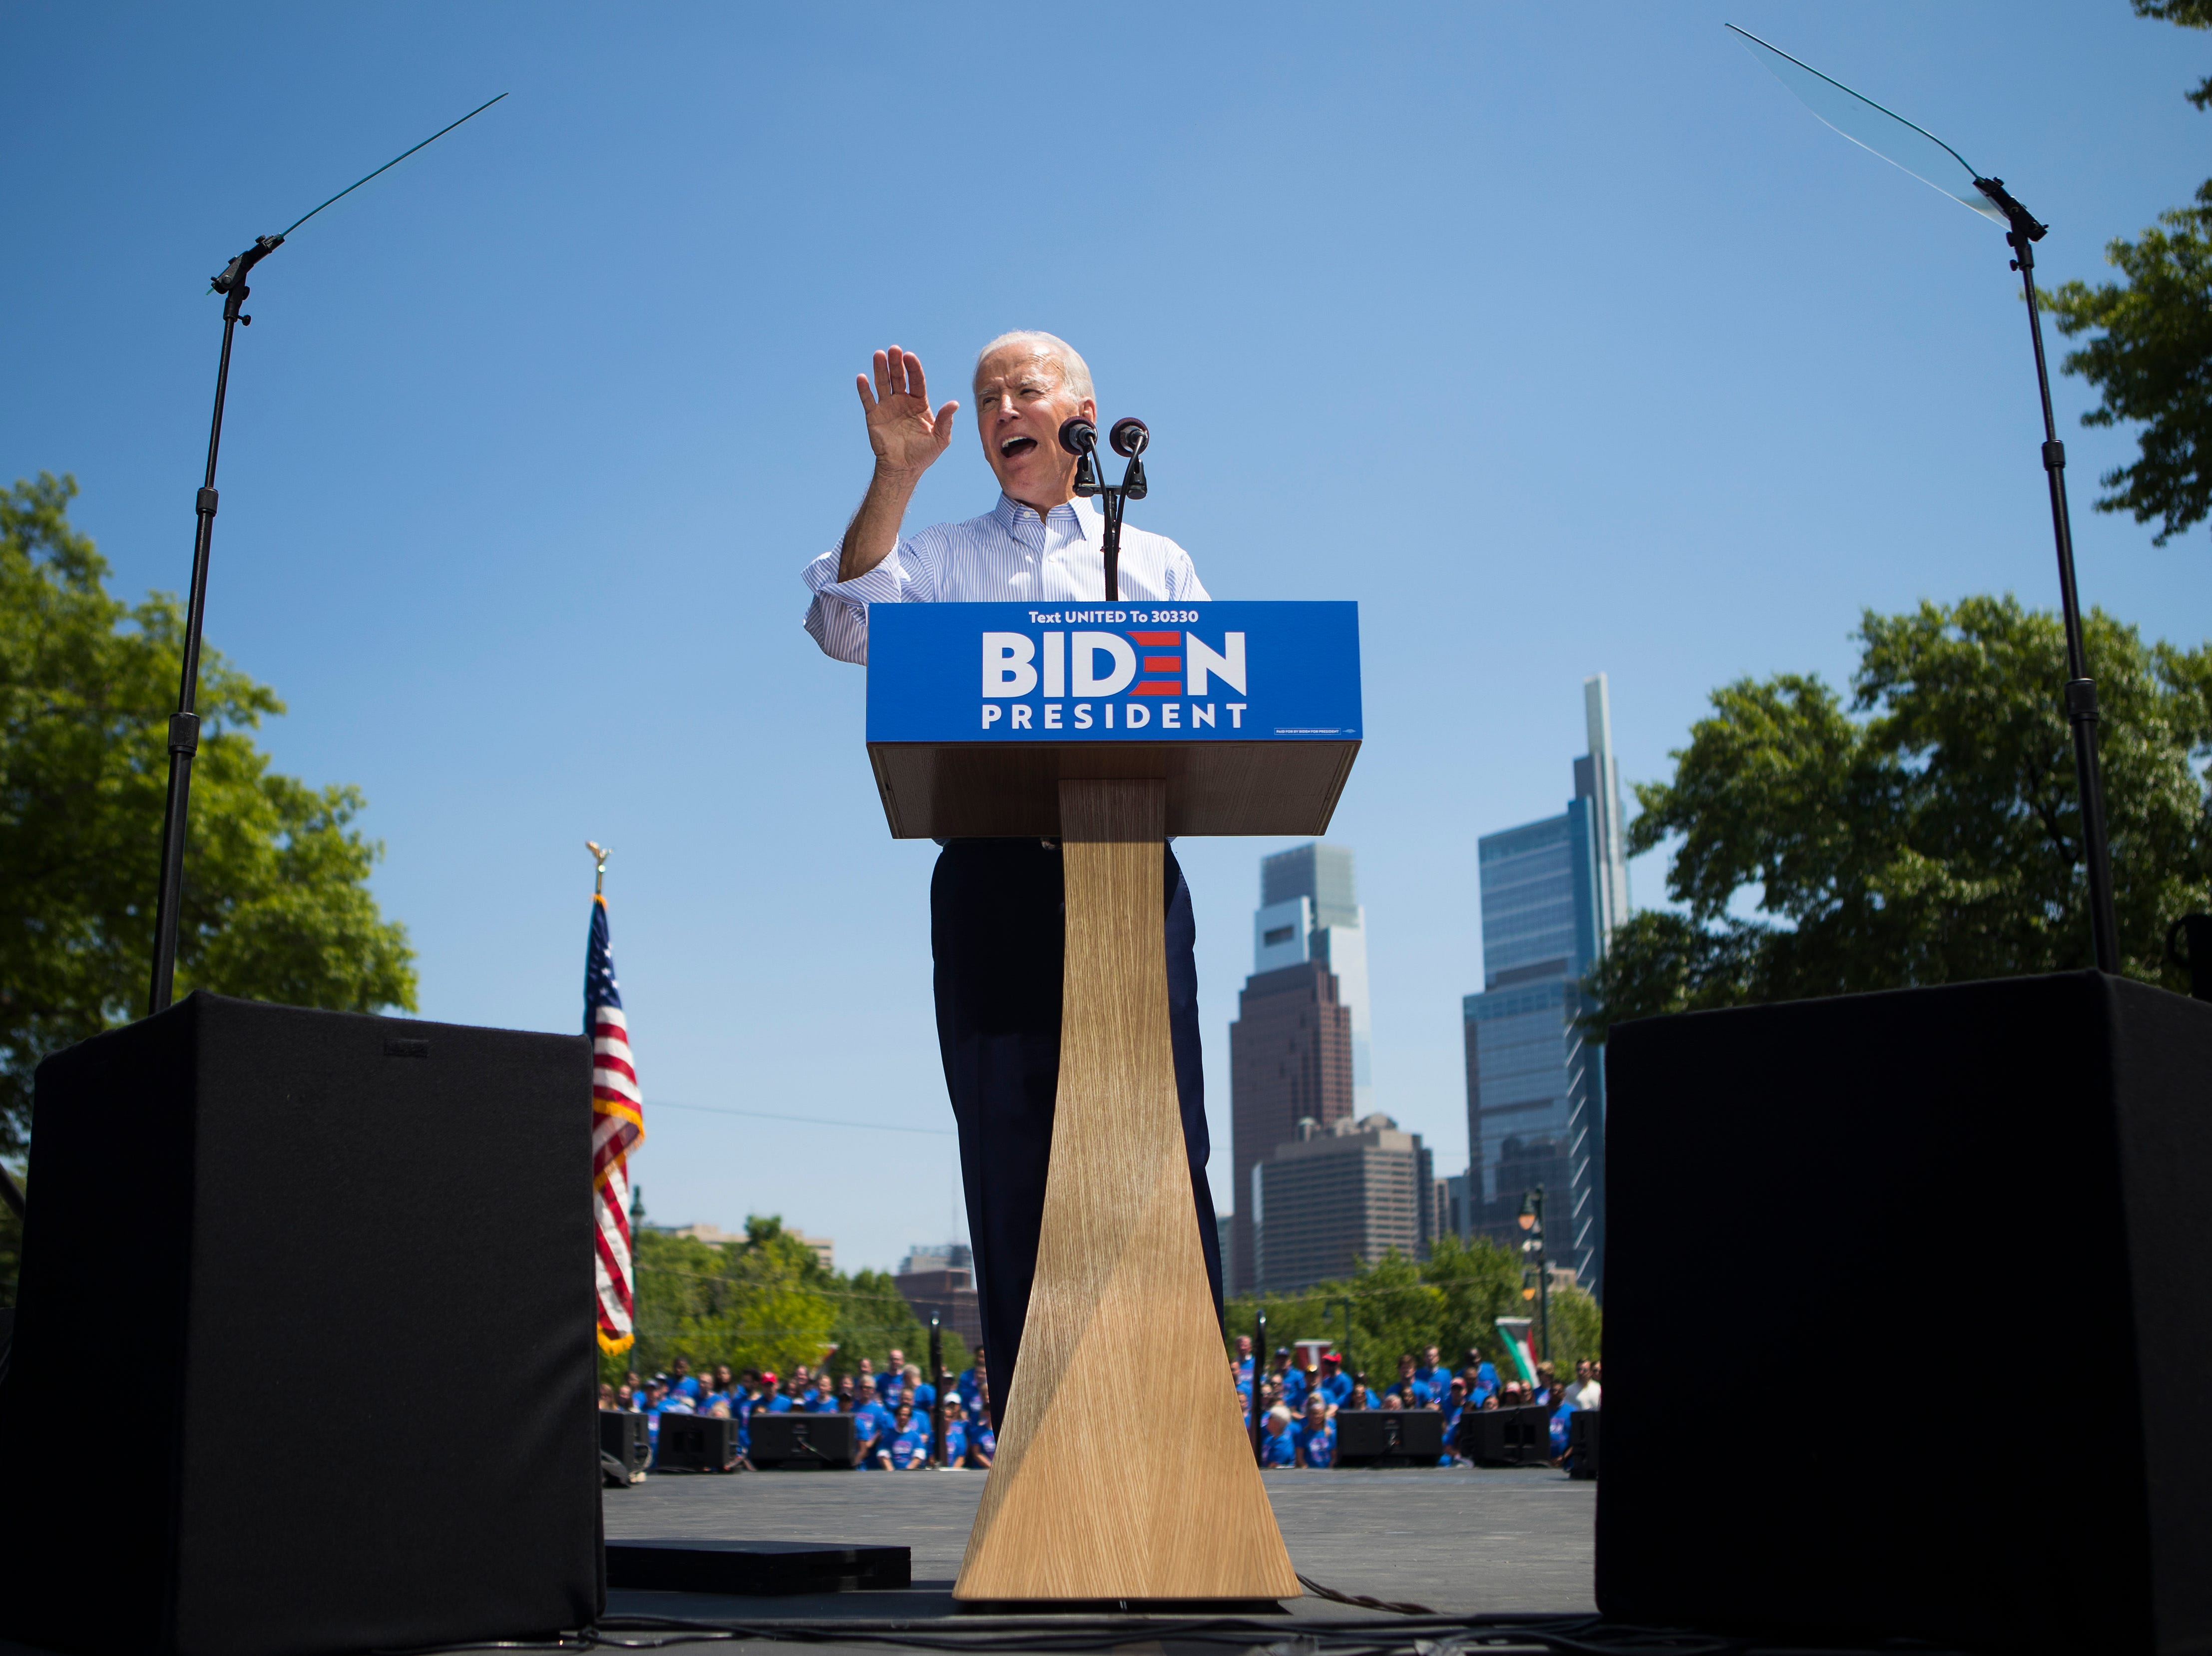 Biden at first major rally: Trump is 'divider-in-chief' who leads with 'hard heart'